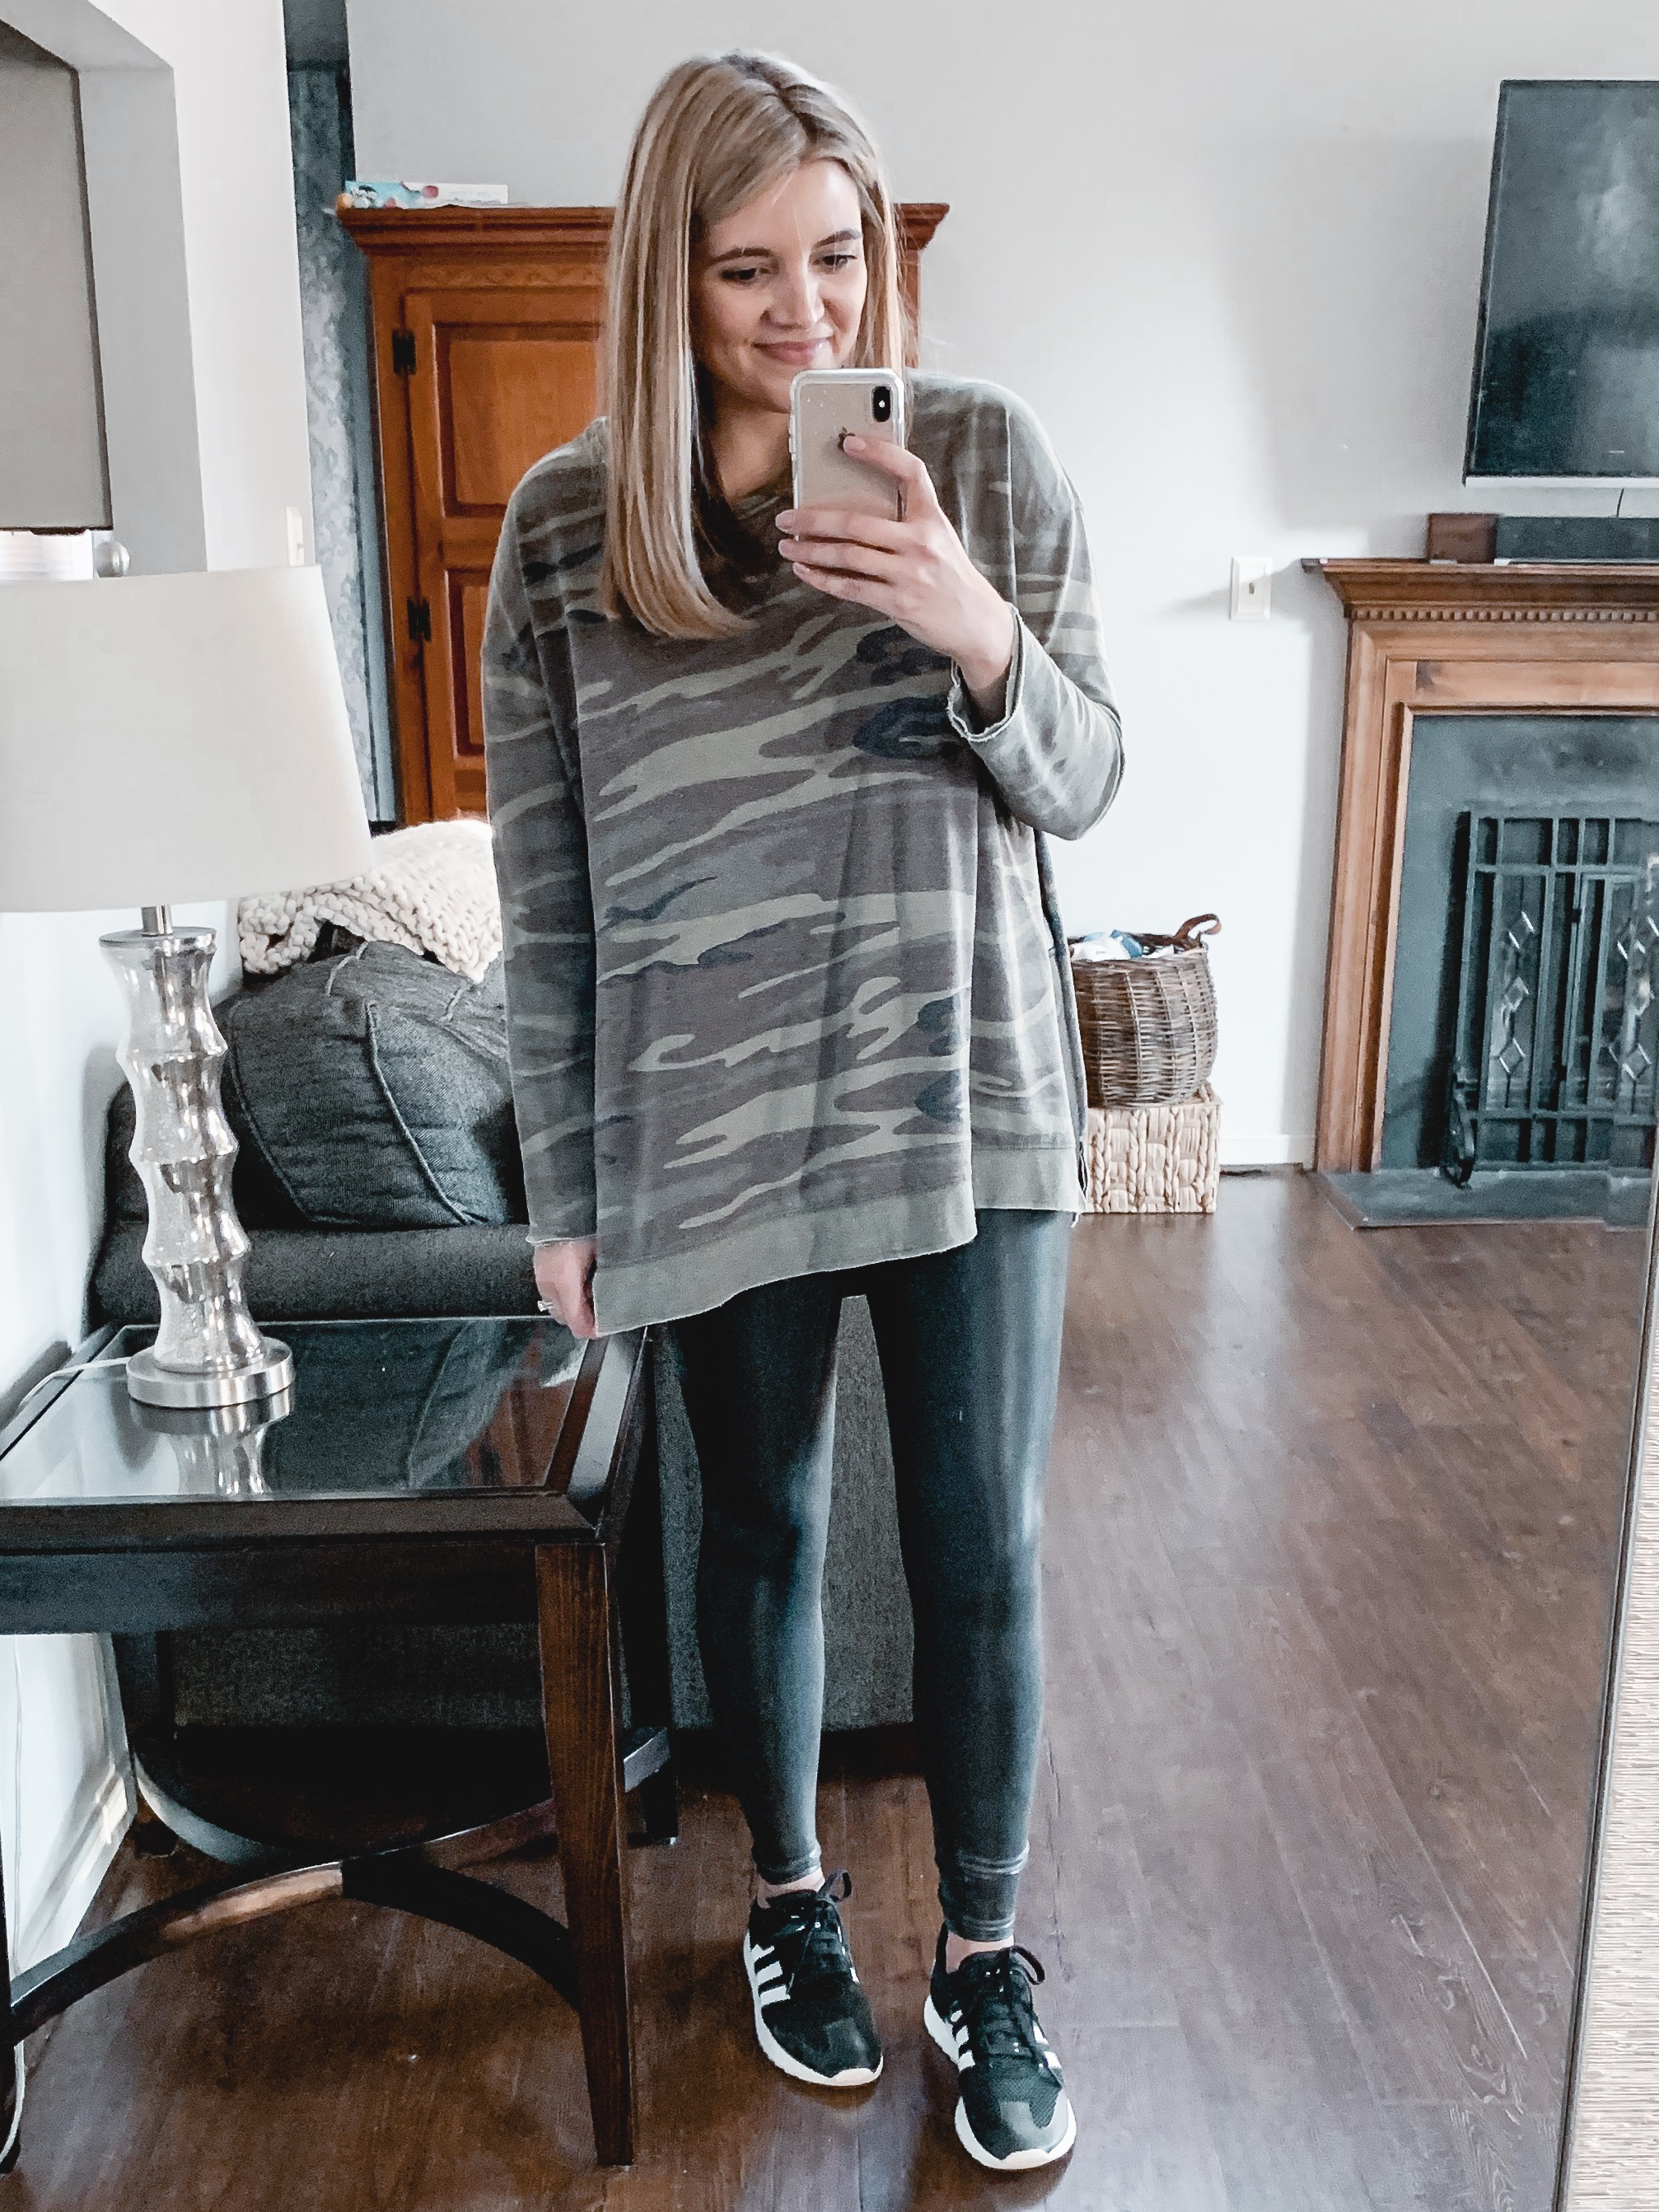 Over 20 Spanx leather leggings outfits - from casual to dressy, this post is covering all the best legging outfit ideas to bust your wardrobe boredom! bylaurenm.com